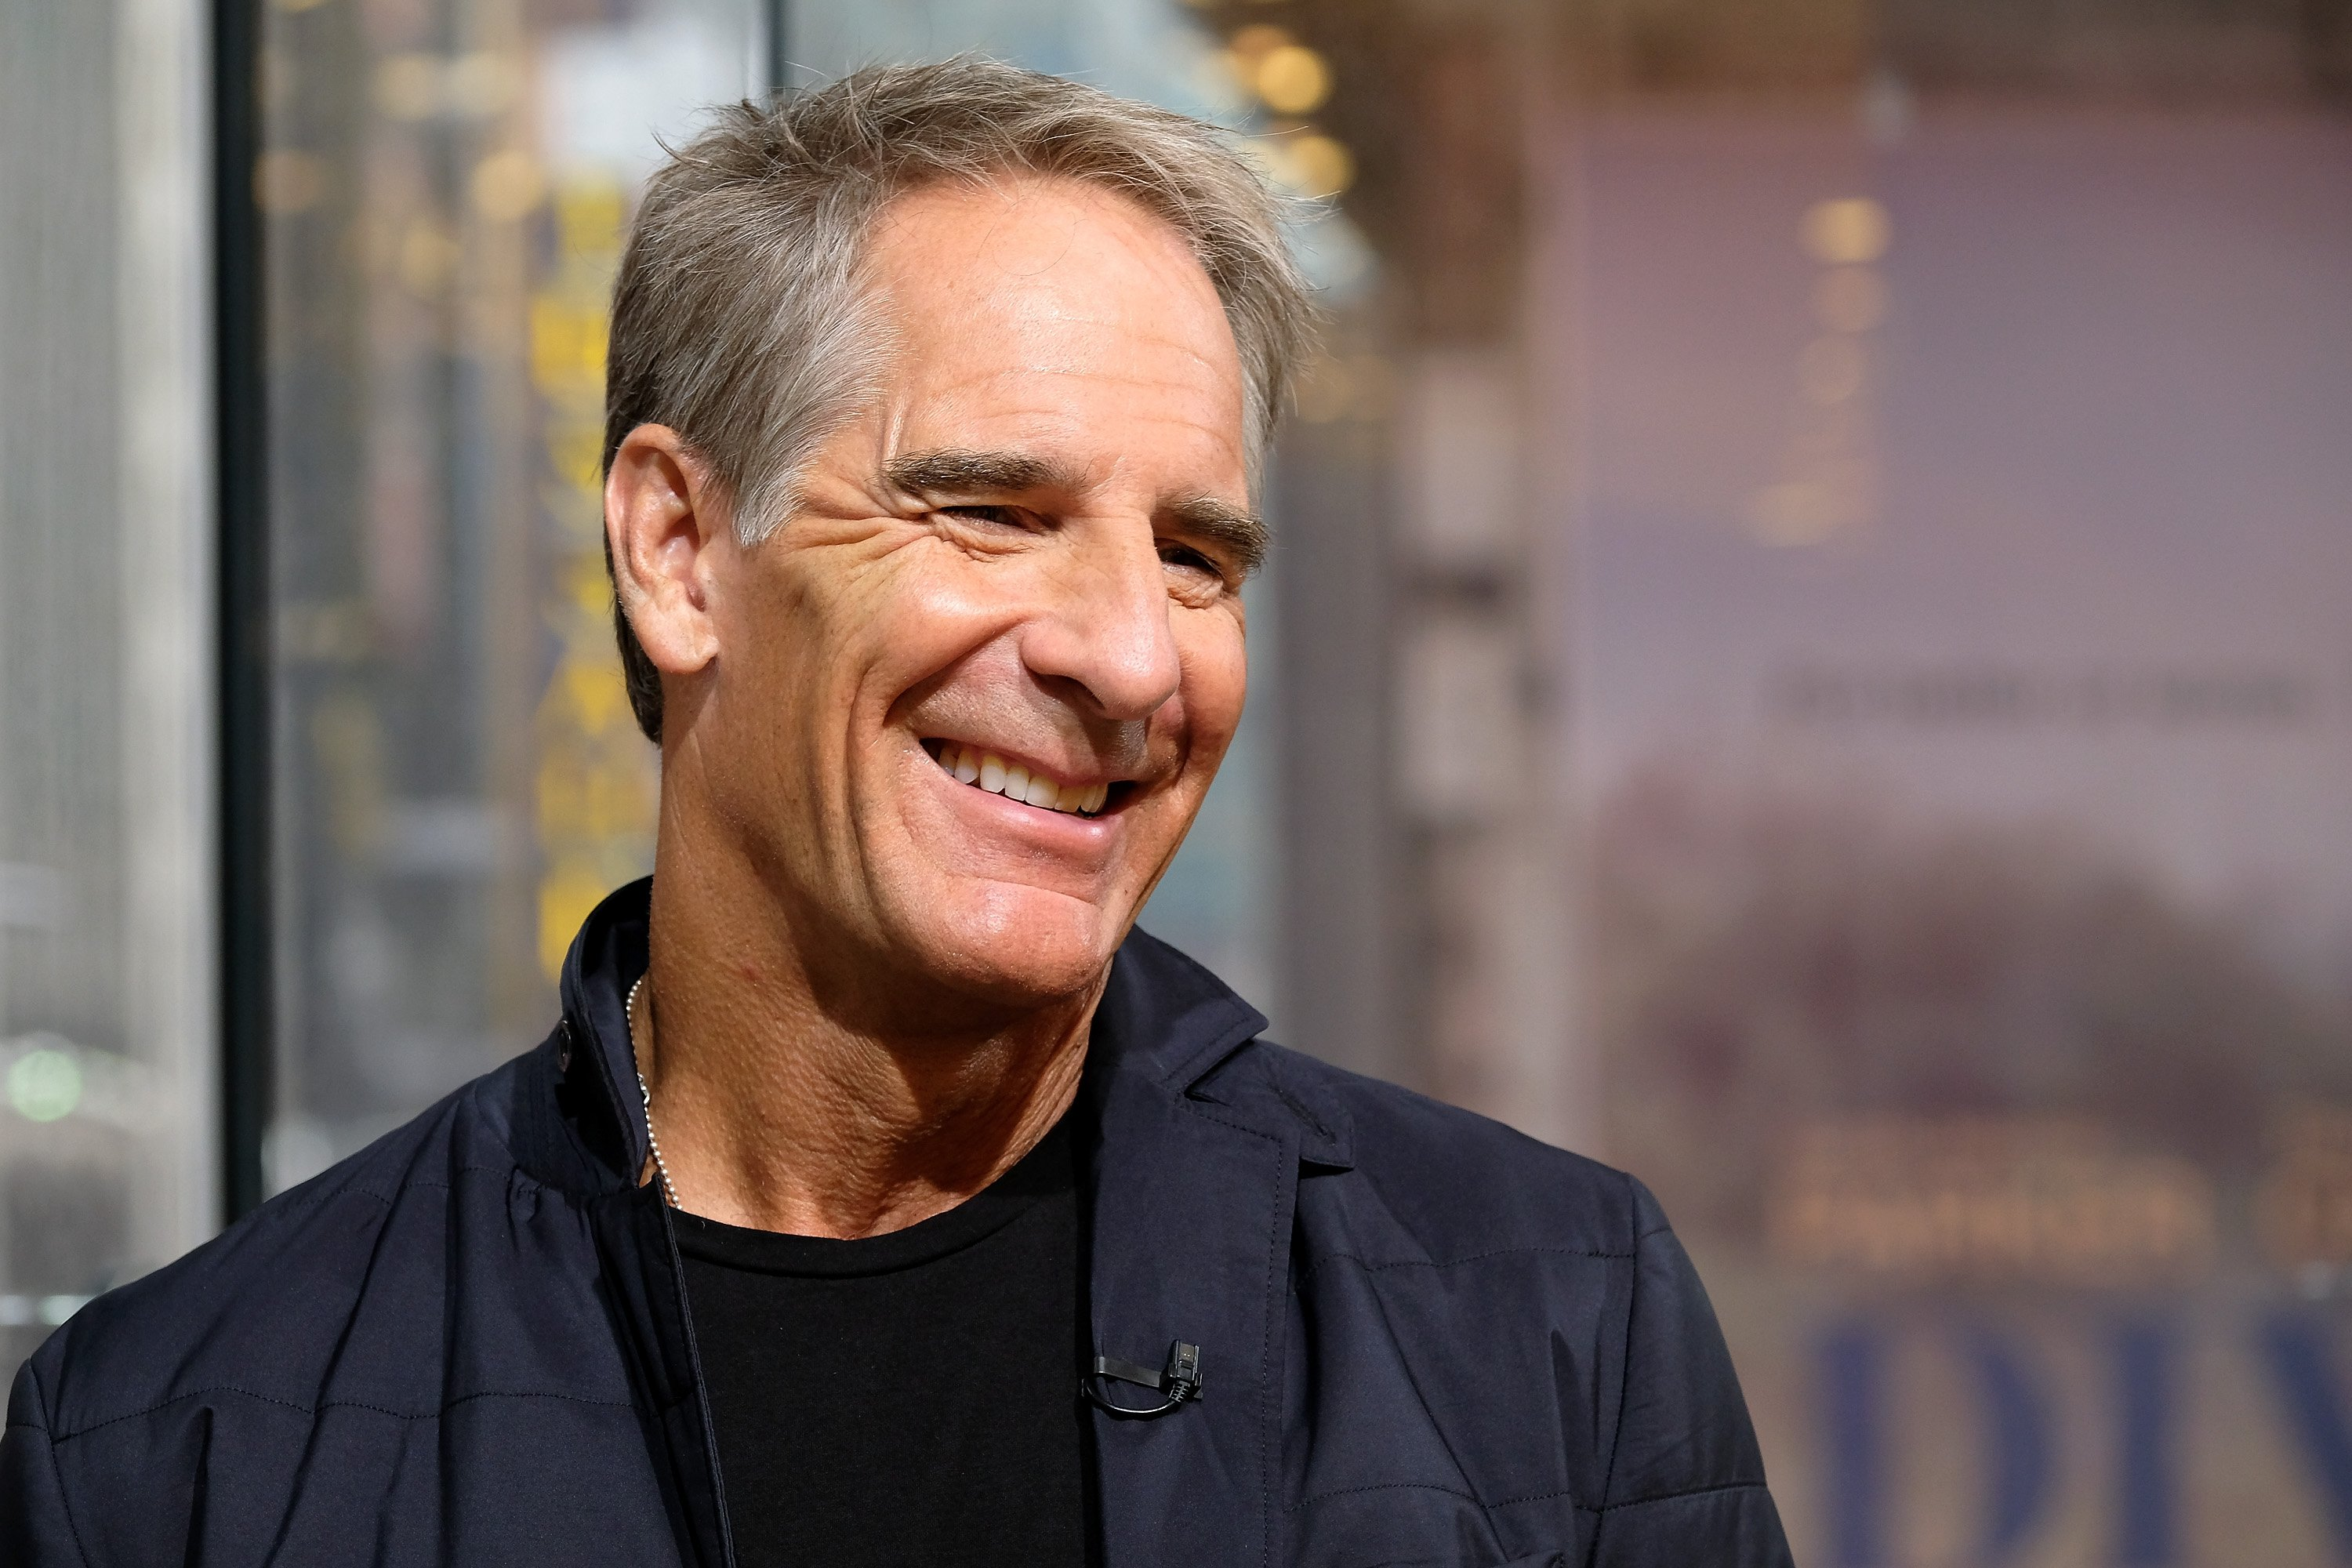 Scott Bakula in New York on September 19, 2016 | Source: Getty Images